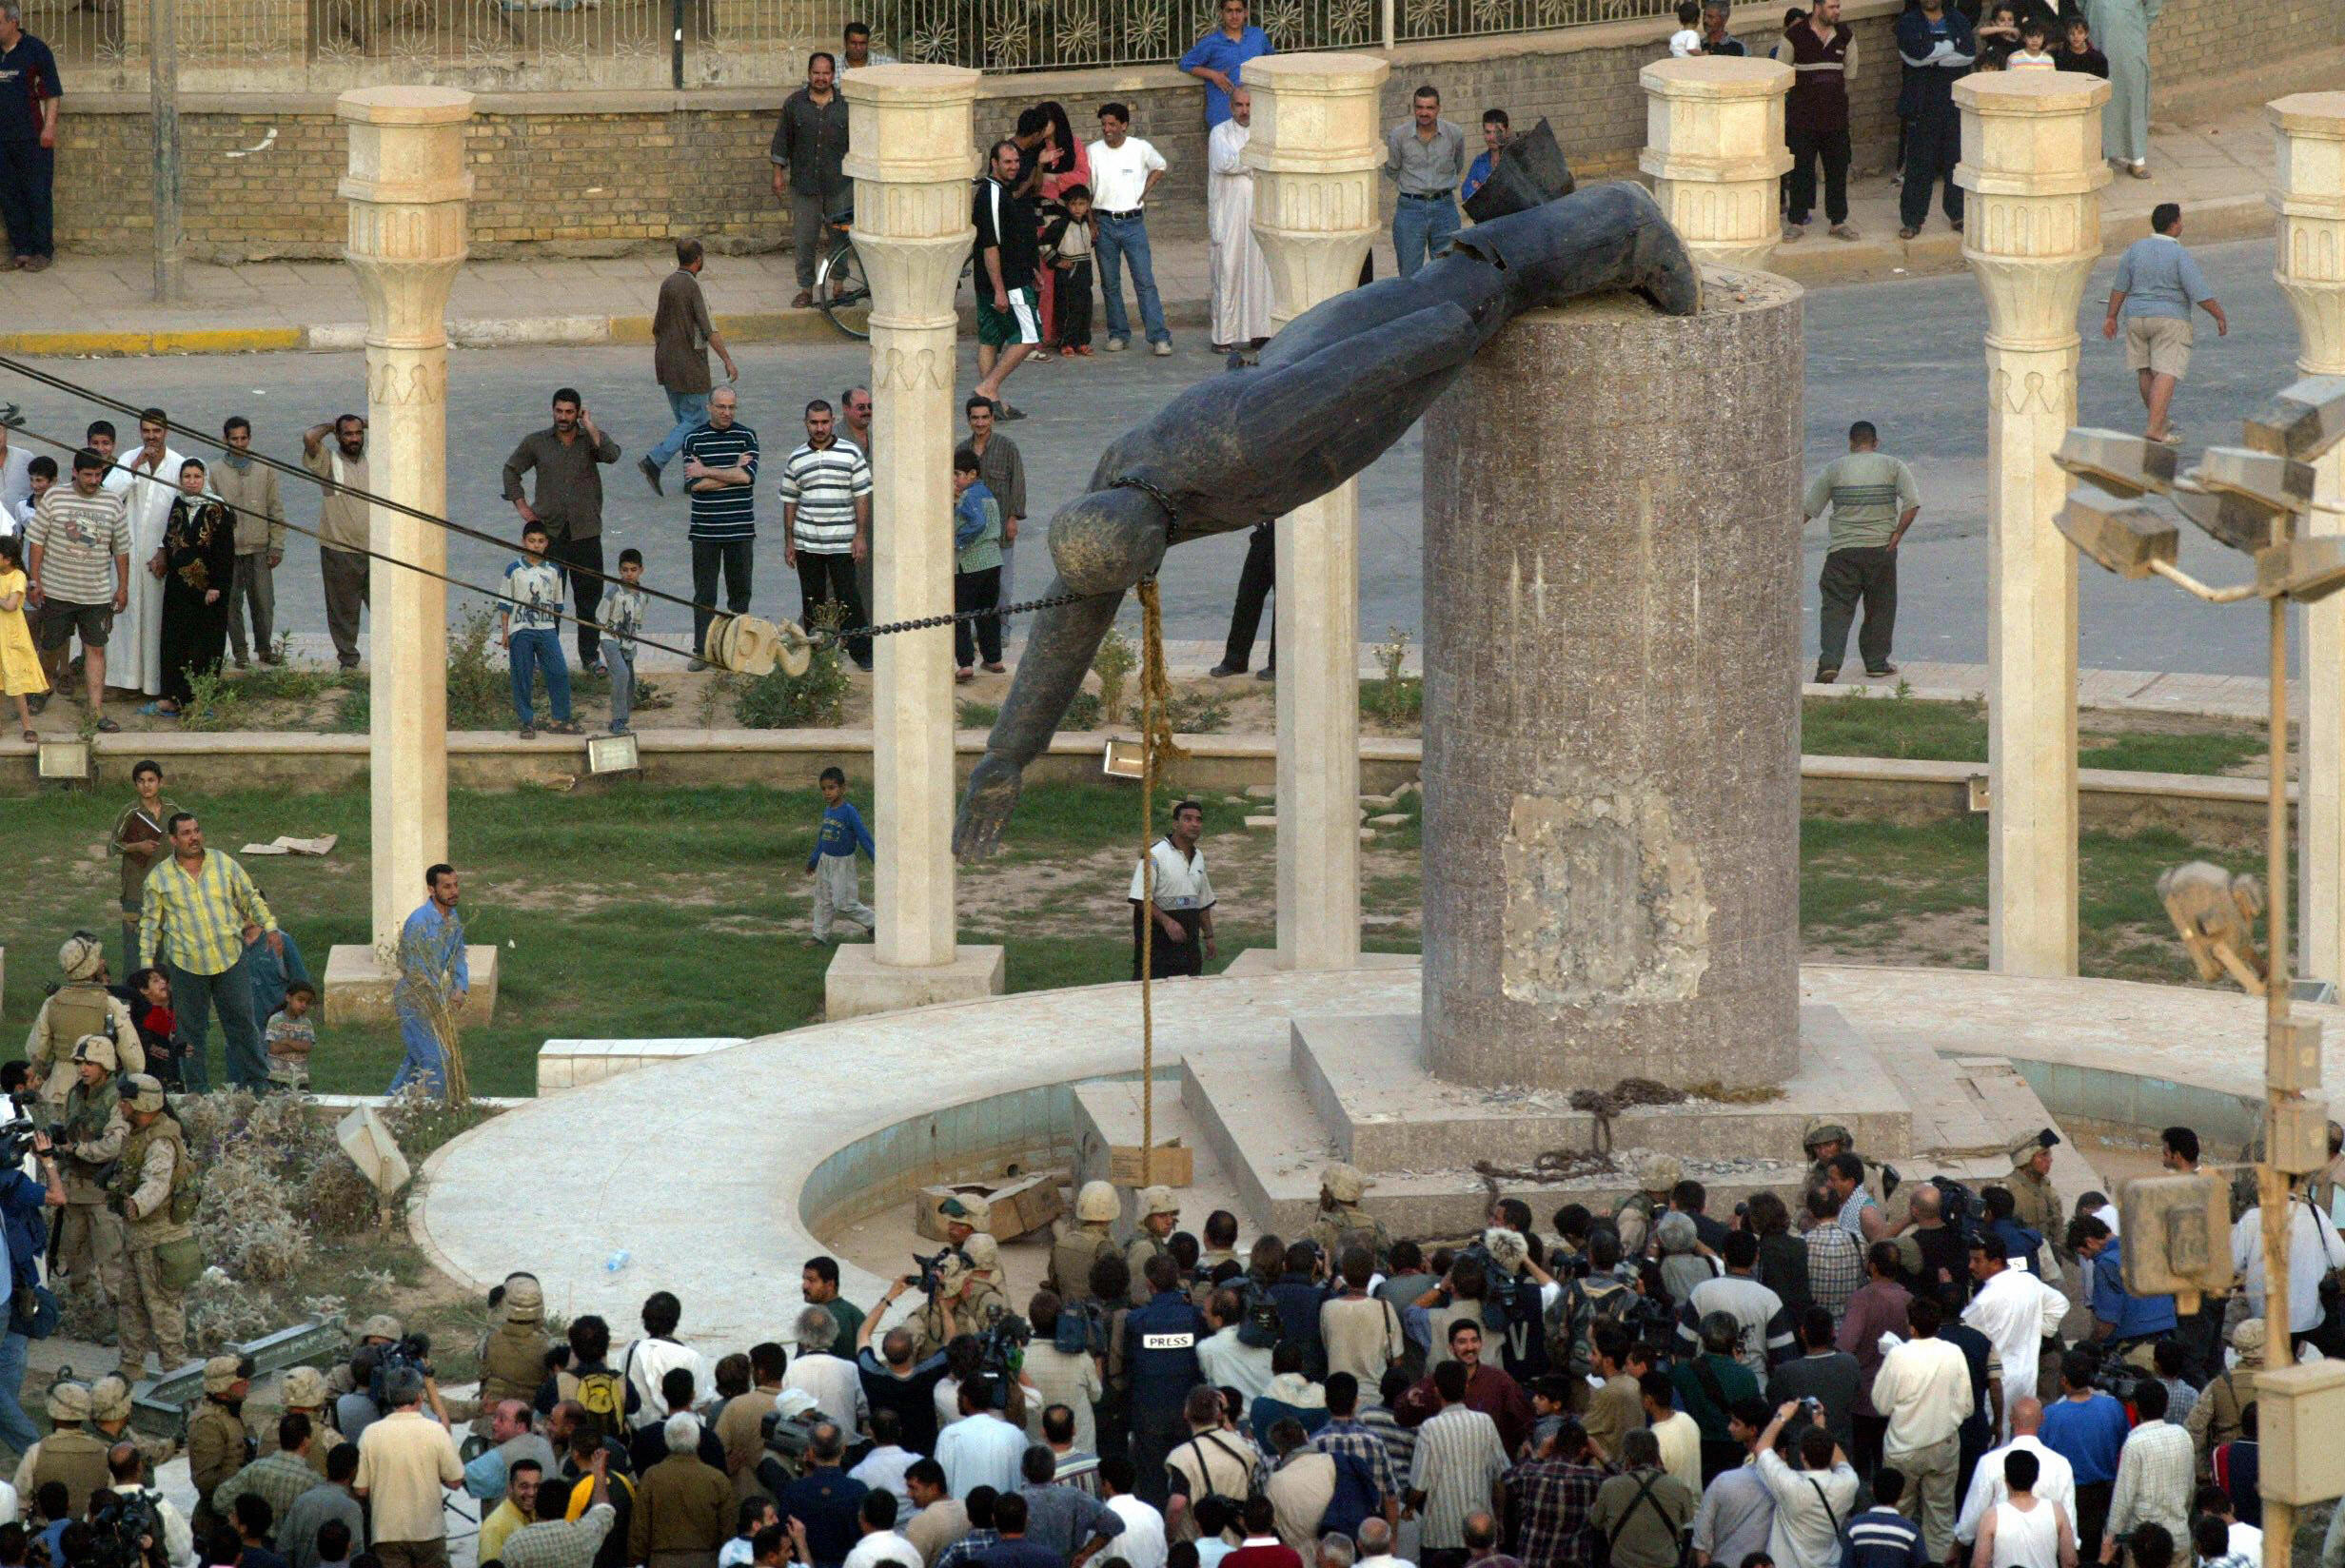 Iraqis watch a statue of Iraqi President Saddam Hussein falling in Baghdad. April 9, 2003.